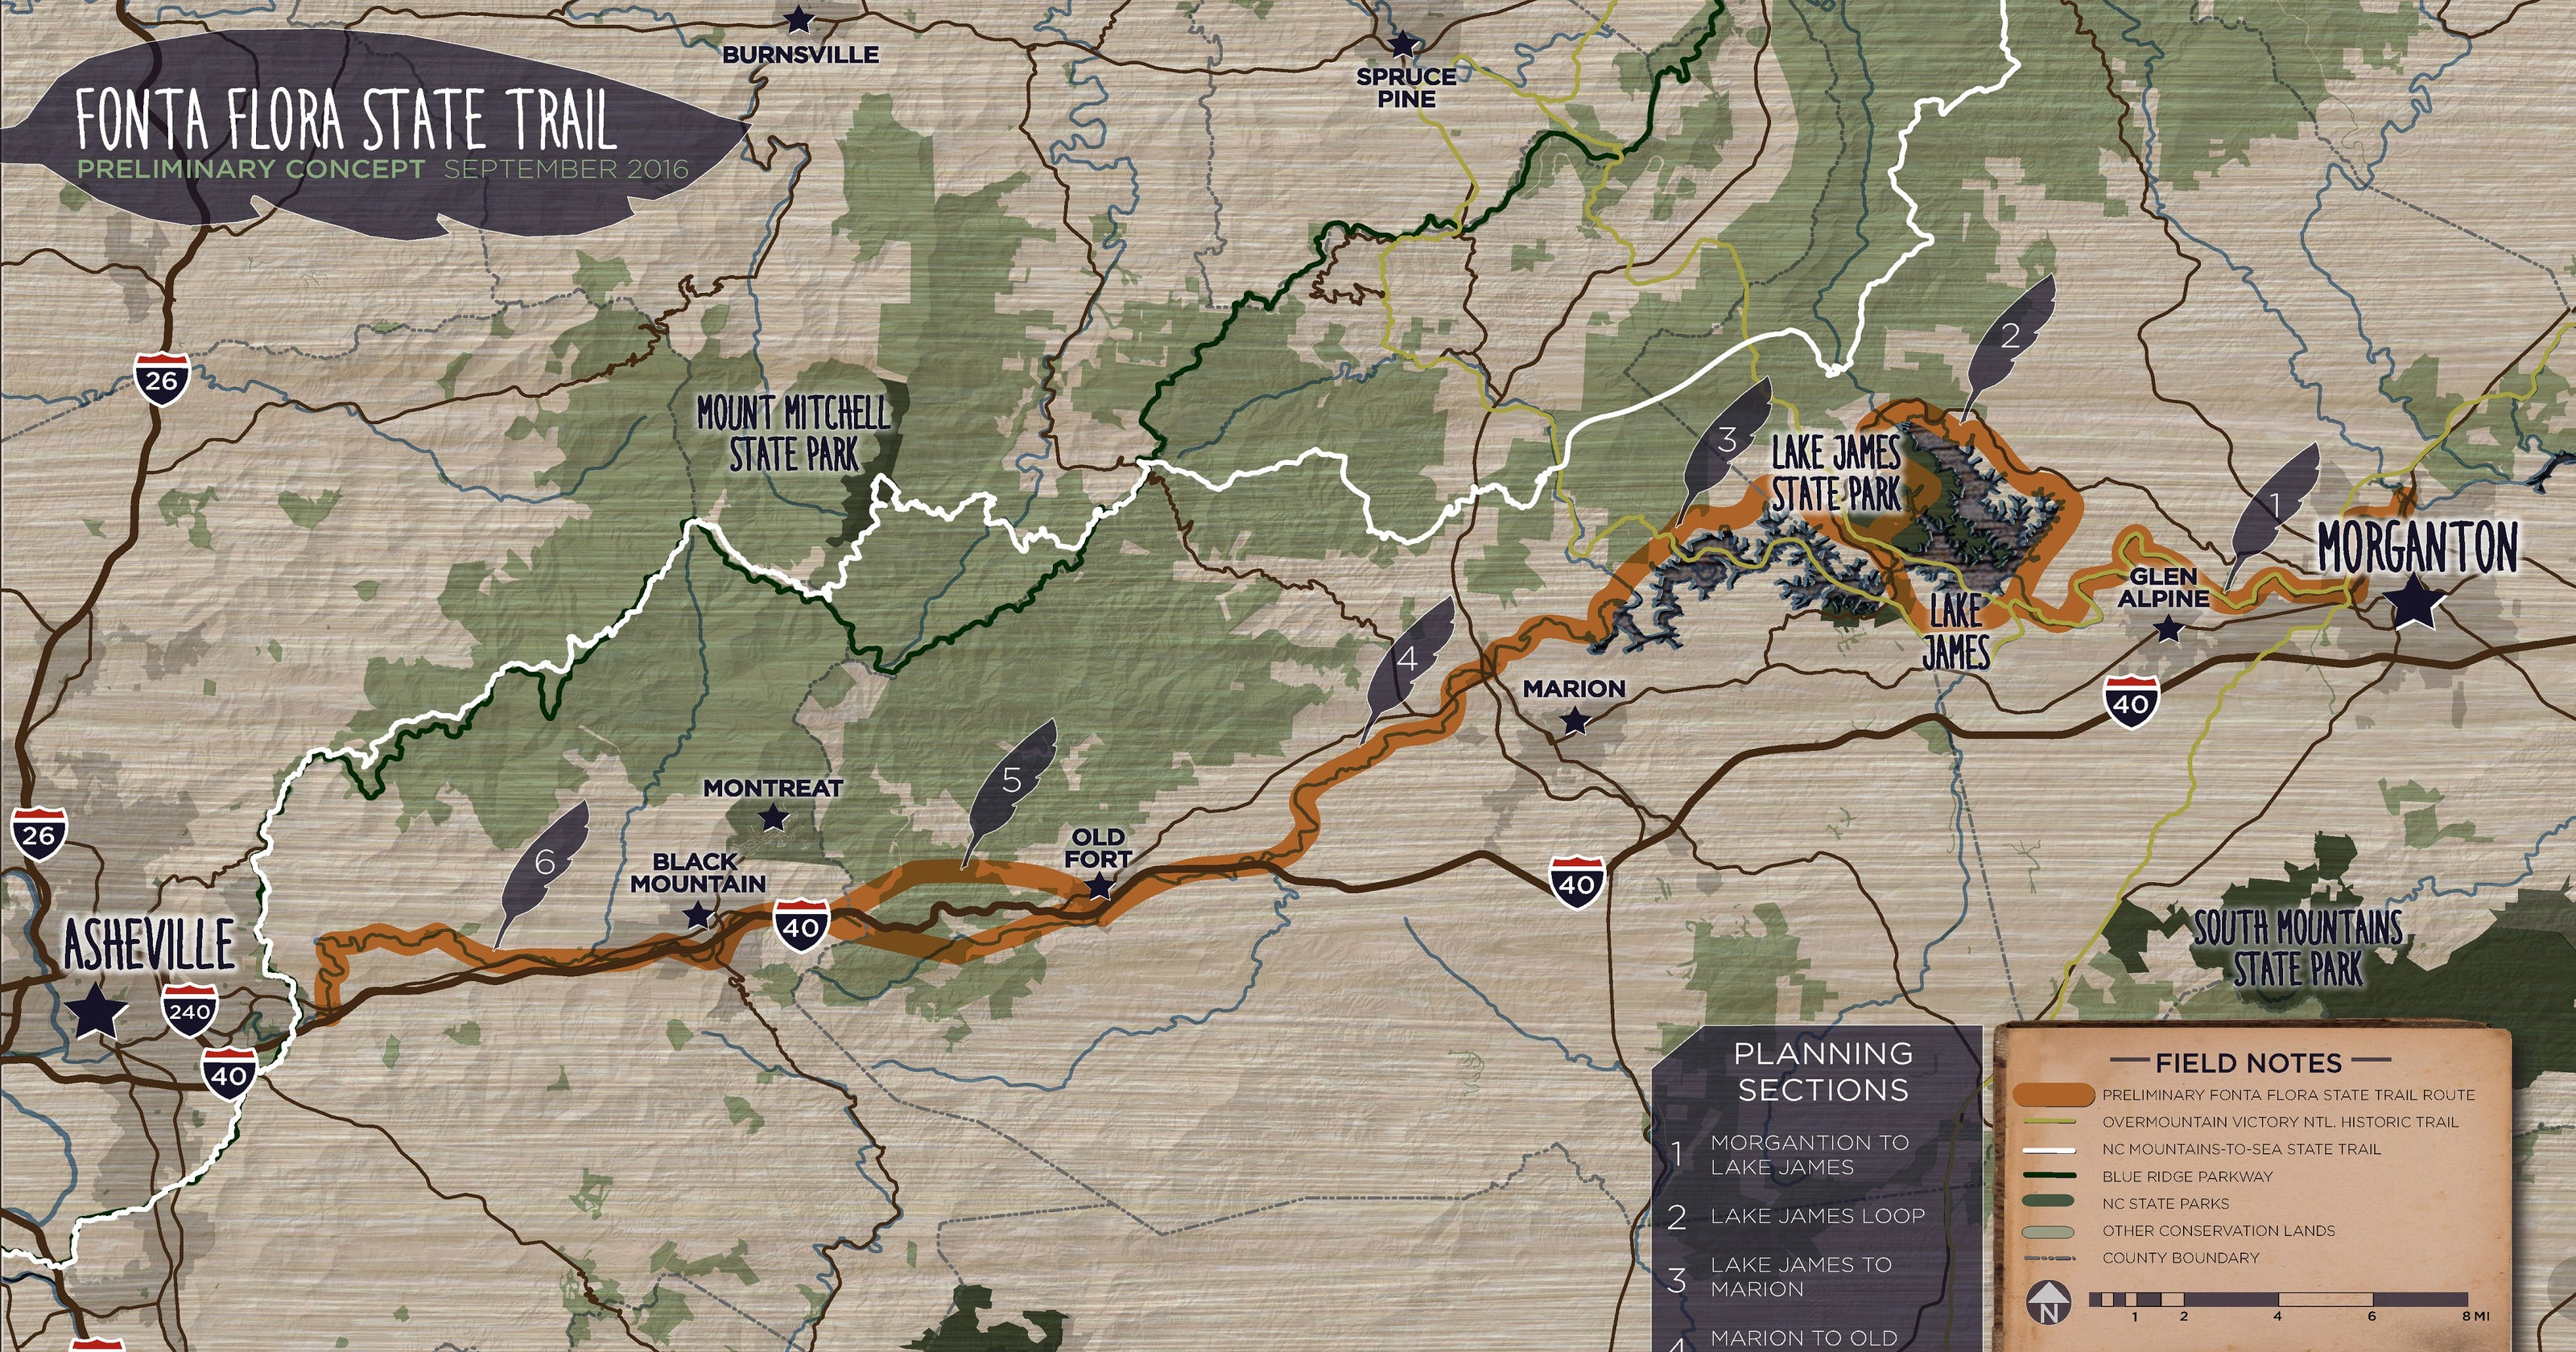 Fonta Flora Trail links foothills, mountains on